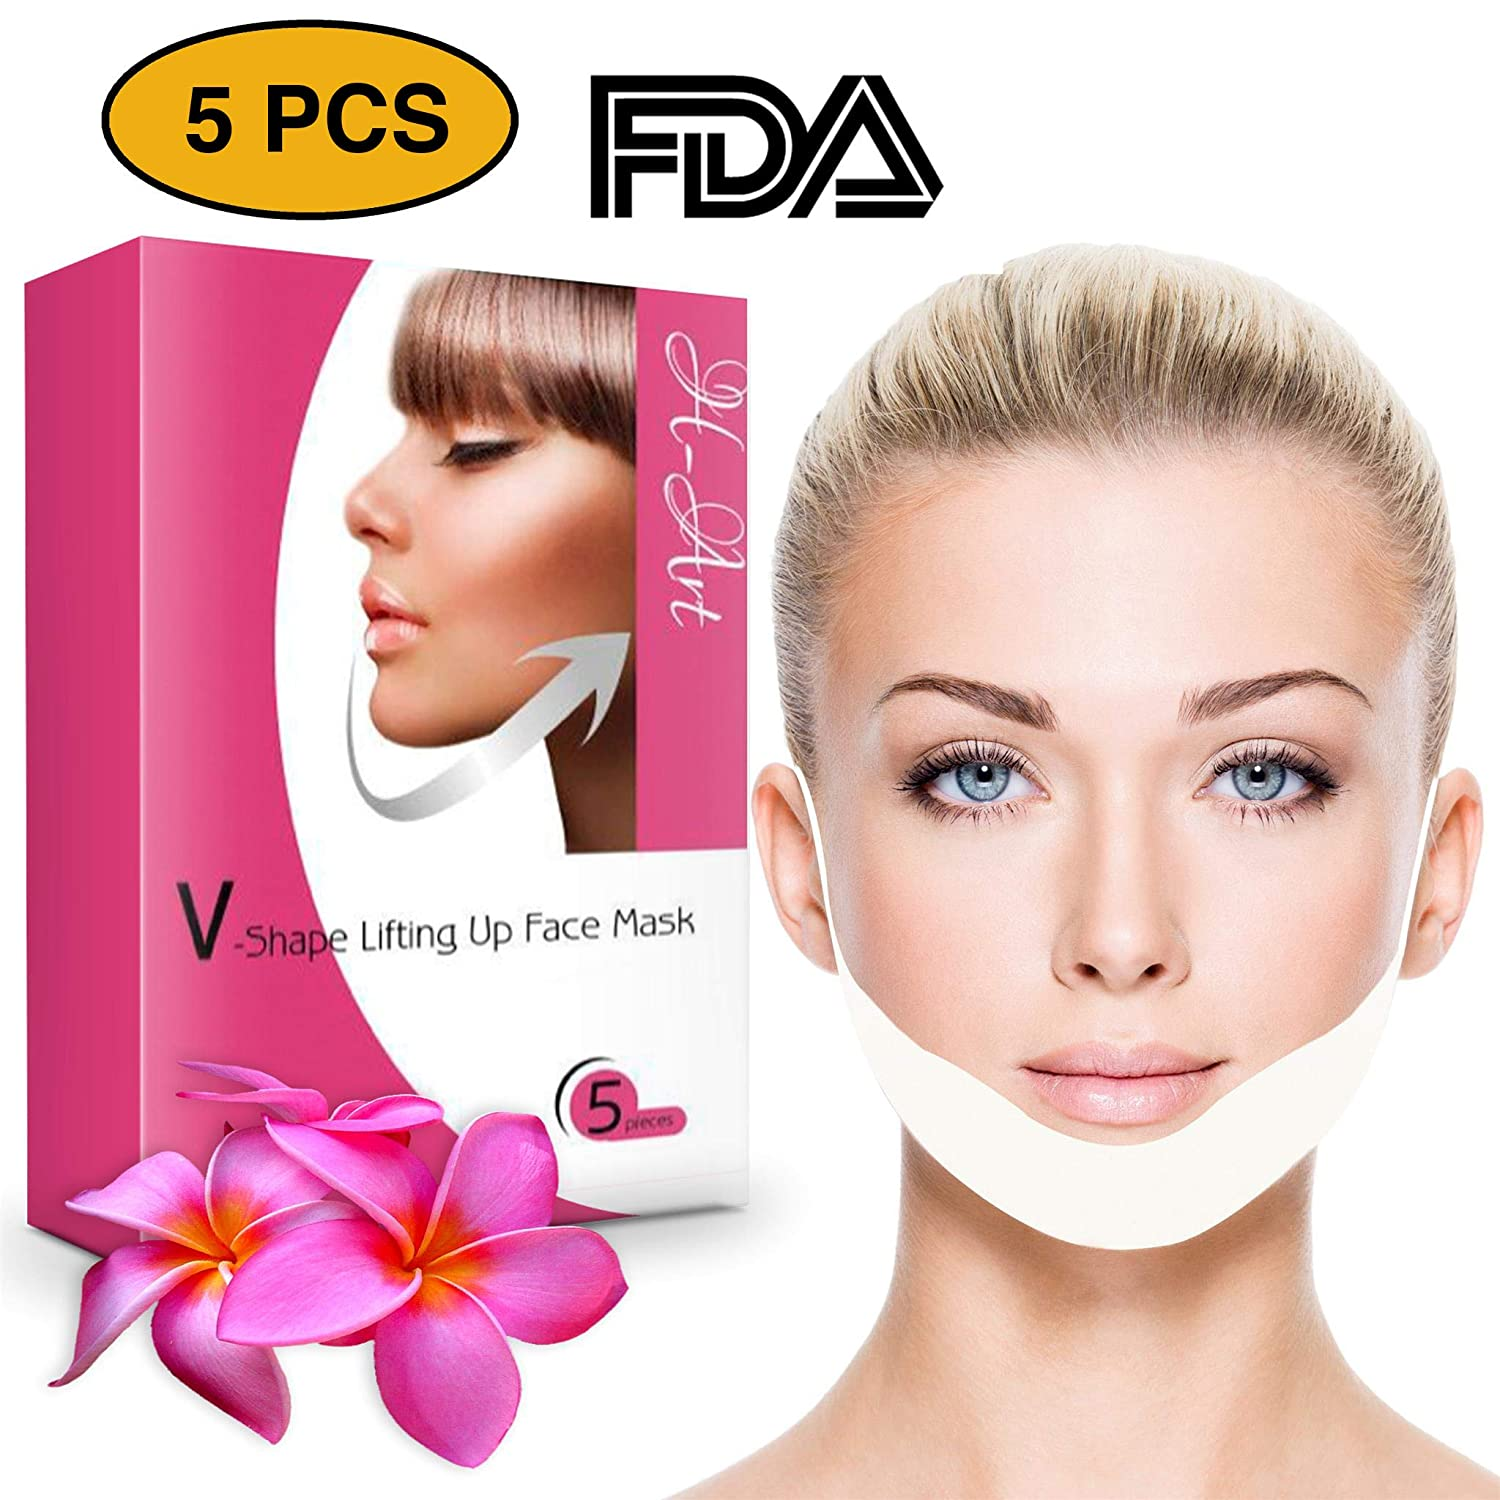 H-Art Chin Up Patch, Face Lift, V line, Double Chin Reducer, Contour Lifting Firming Moisturizing Mask - 5 Strips